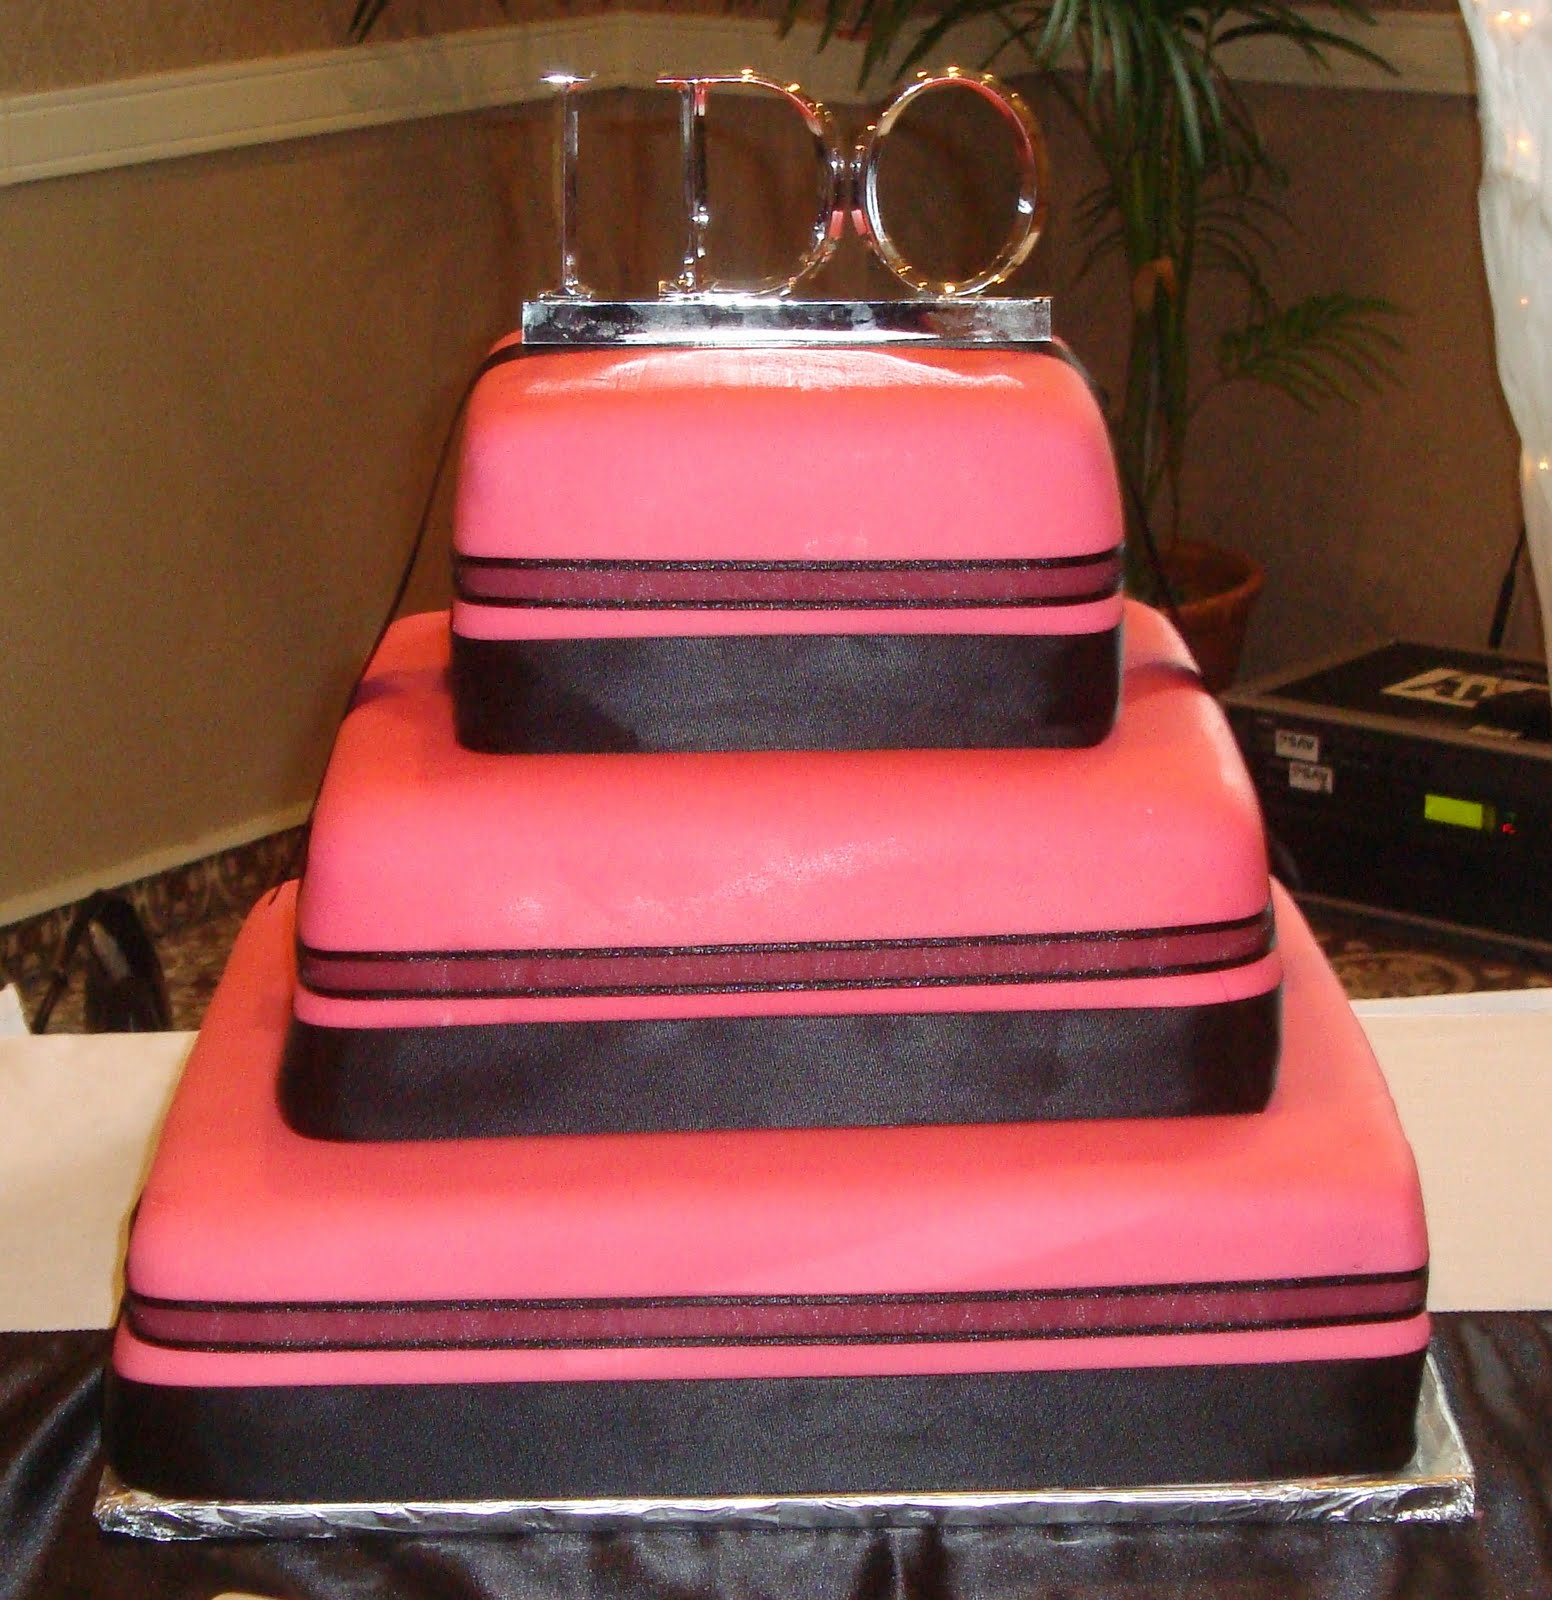 Cakes By Alissa: Pink and Black Square Wedding Cake August 2009